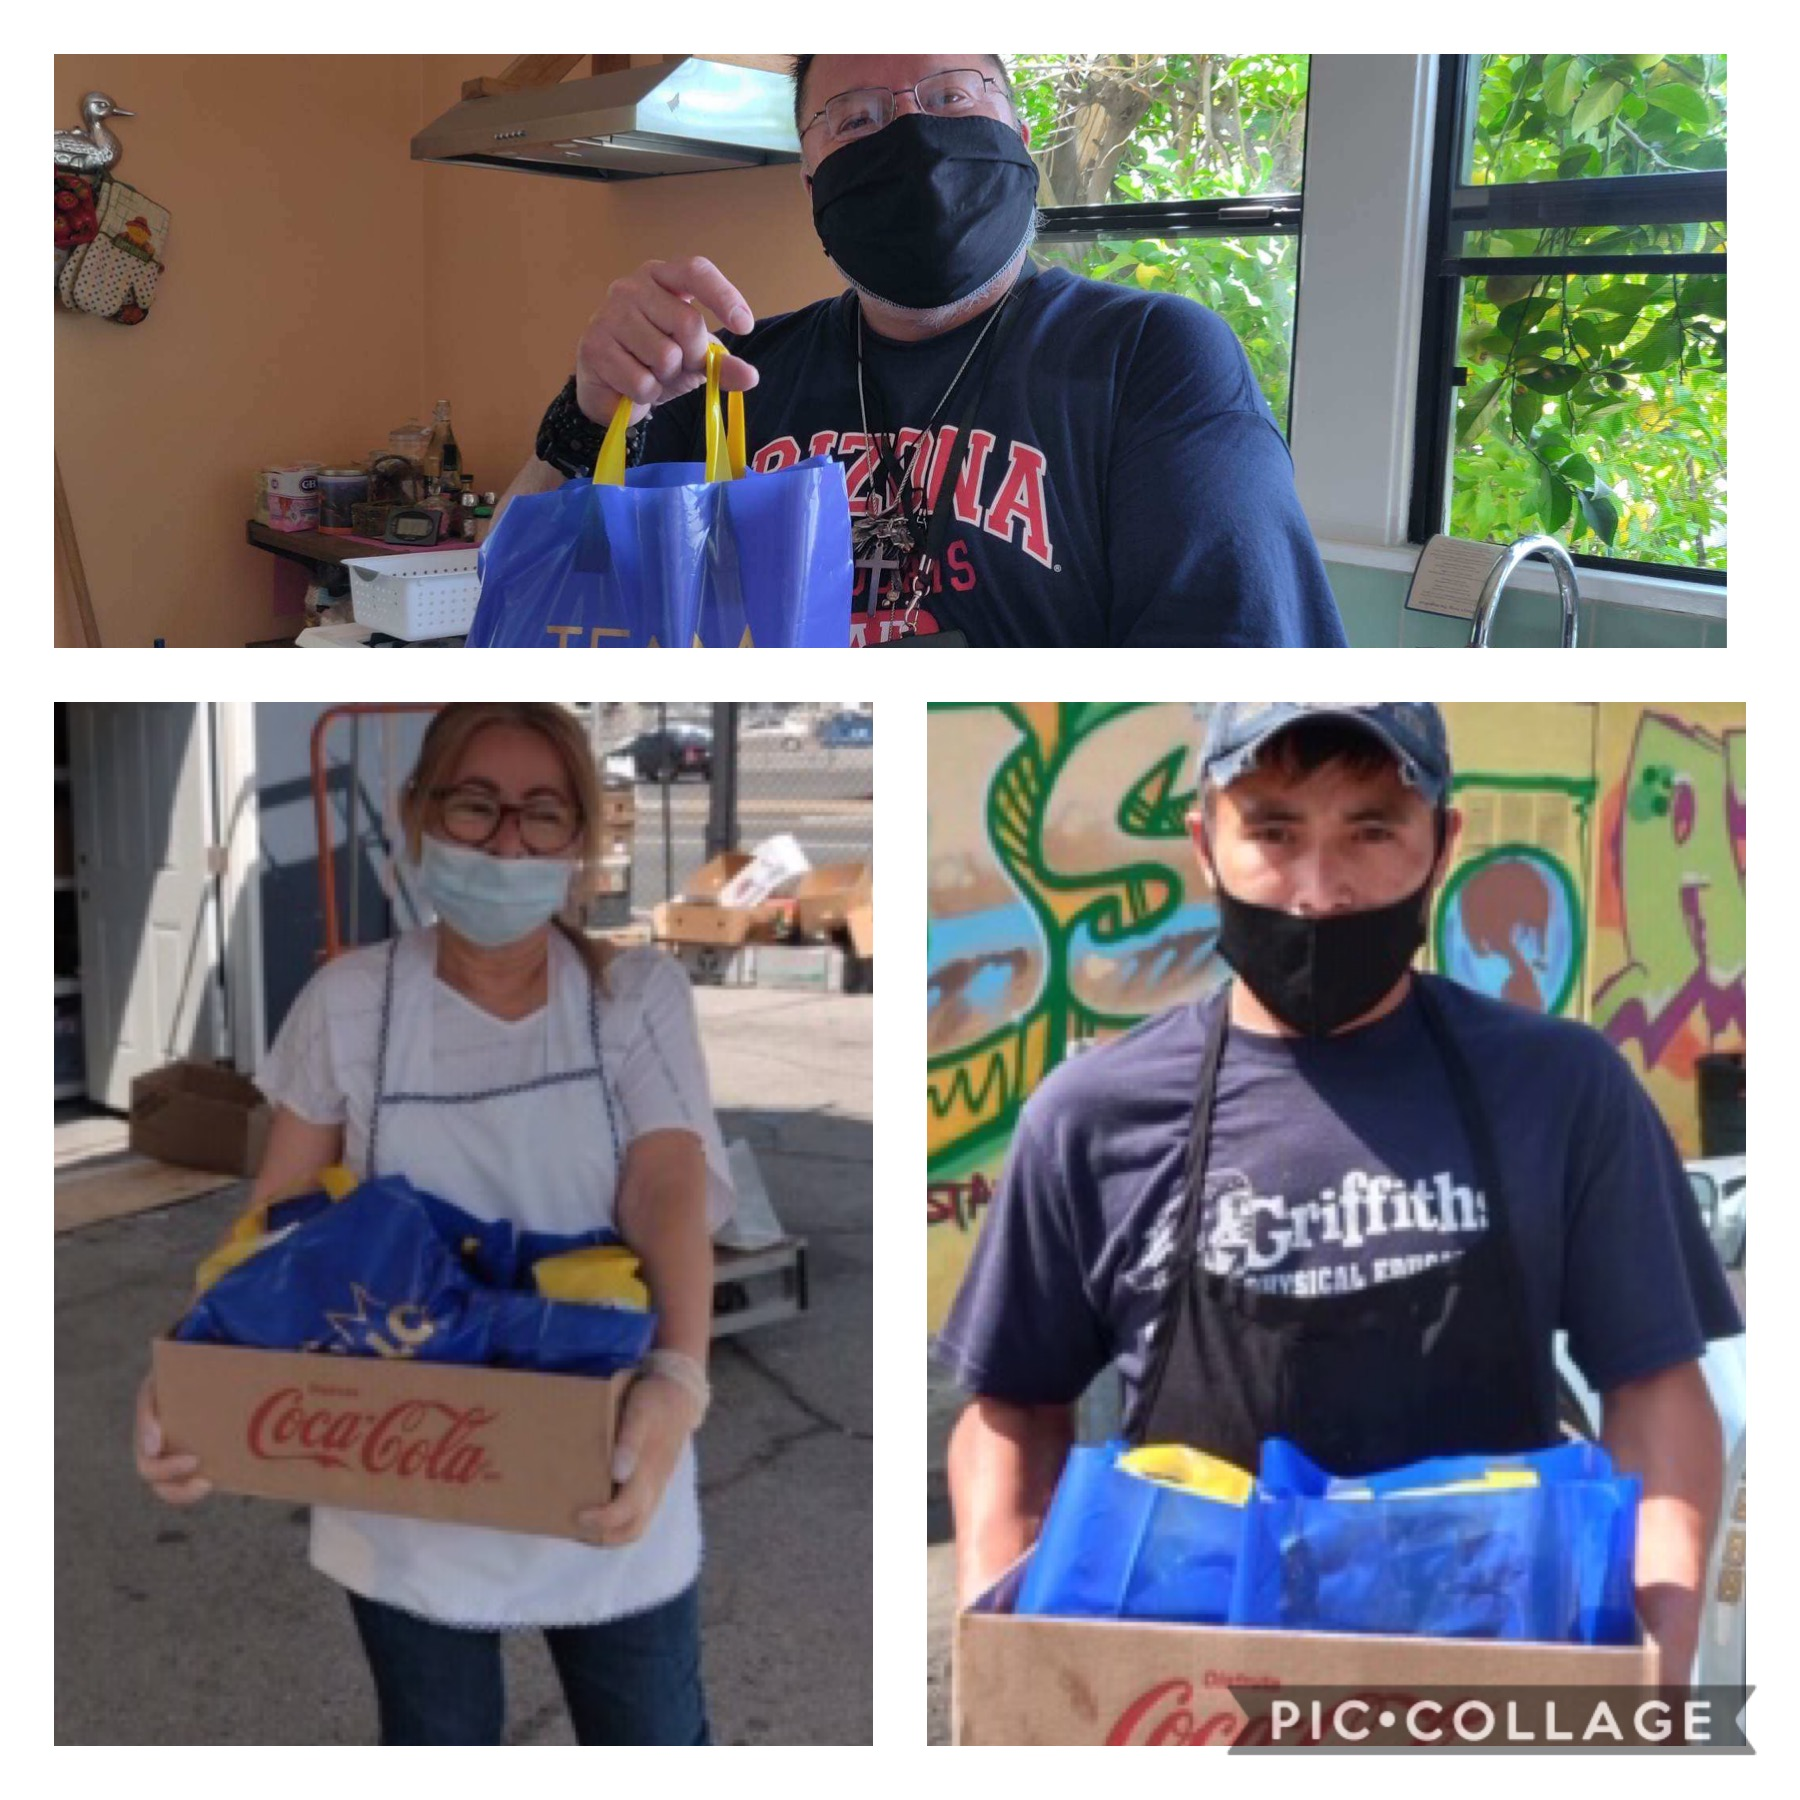 Iglesias Pentecostal and St. Ignatius – St Vincent with Arroyo Seco Arts Collective assist receive groceries & Chico's Meals 6-12-2020 COLLAGE